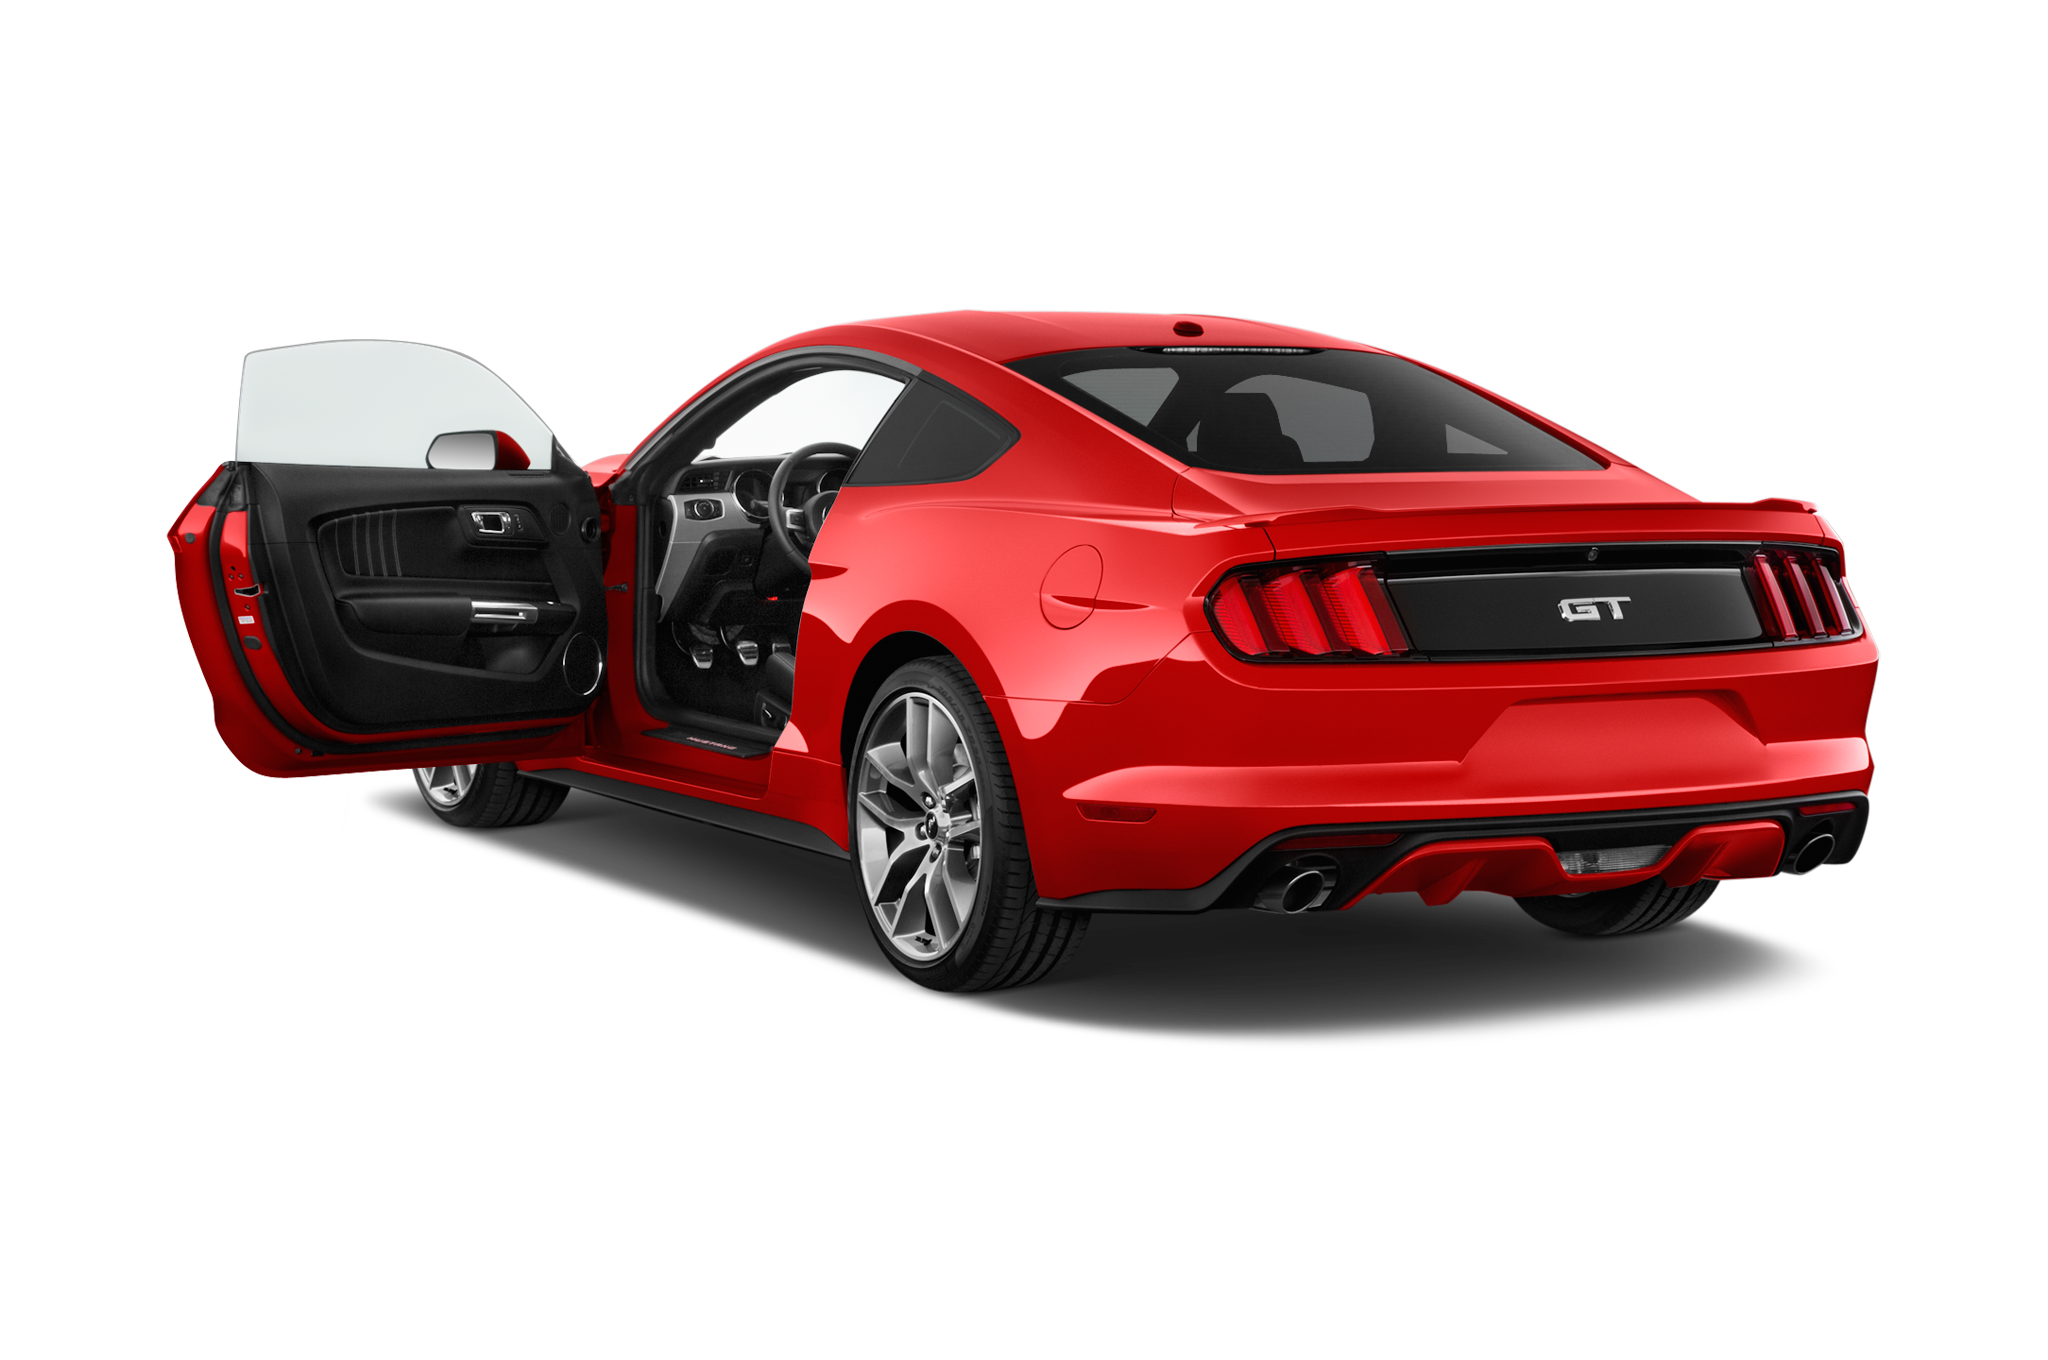 Mustang car clipart free image royalty free 2017-ford-mustang-gt-premium-coupe-doors.png (2048×1360) | PNG ... image royalty free